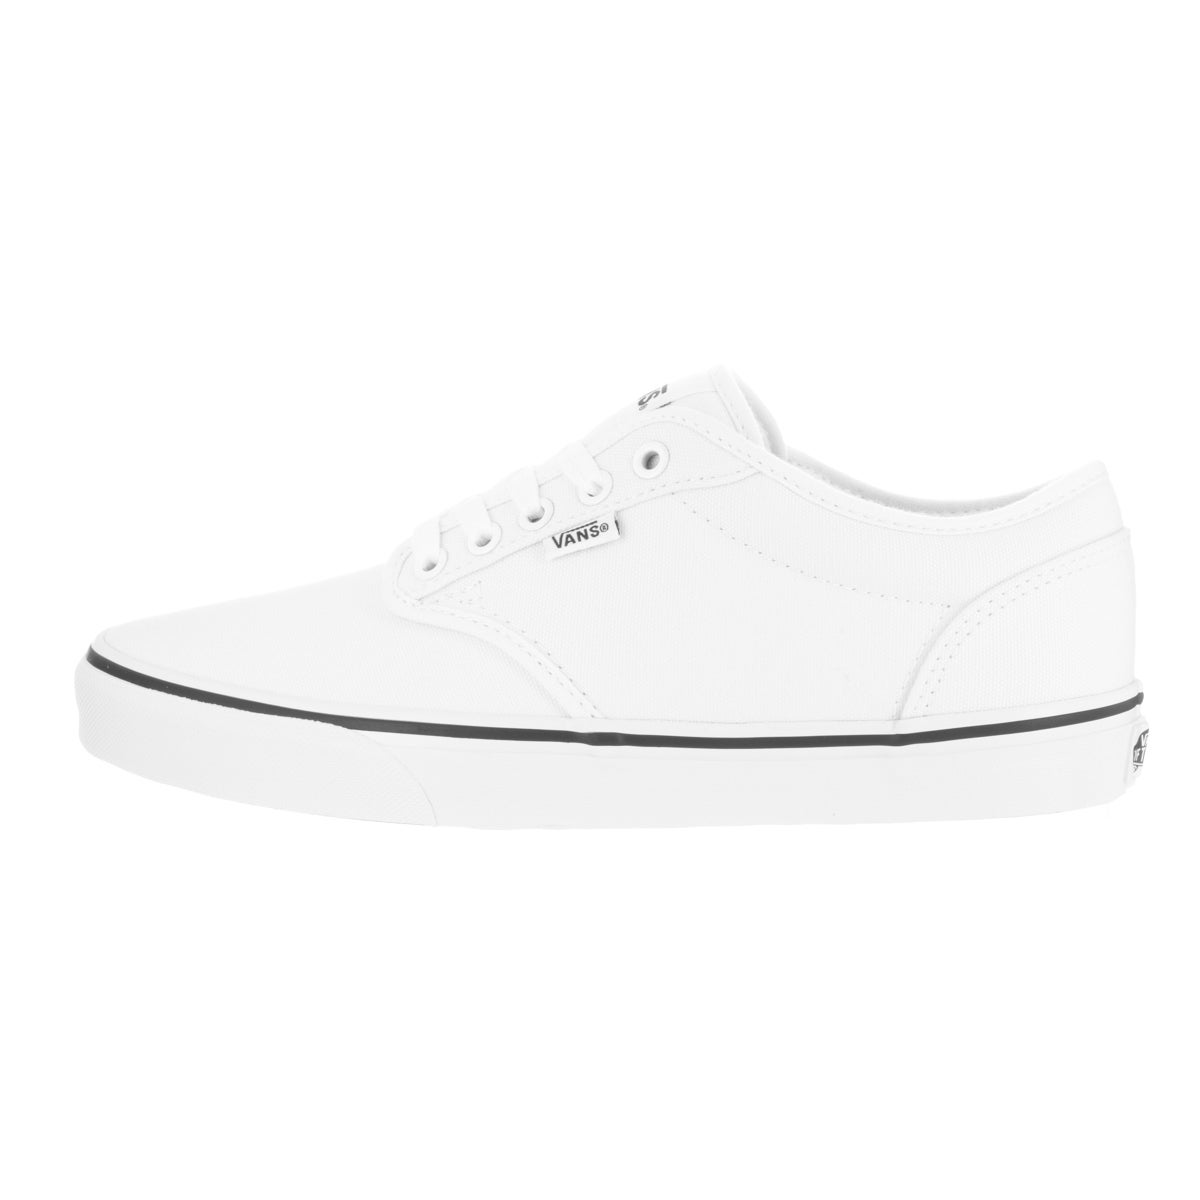 d97f978b60c2 Shop Vans Men s Atwood Black Foxing White White Canvas Skate Shoe - Free  Shipping Today - Overstock - 13313104